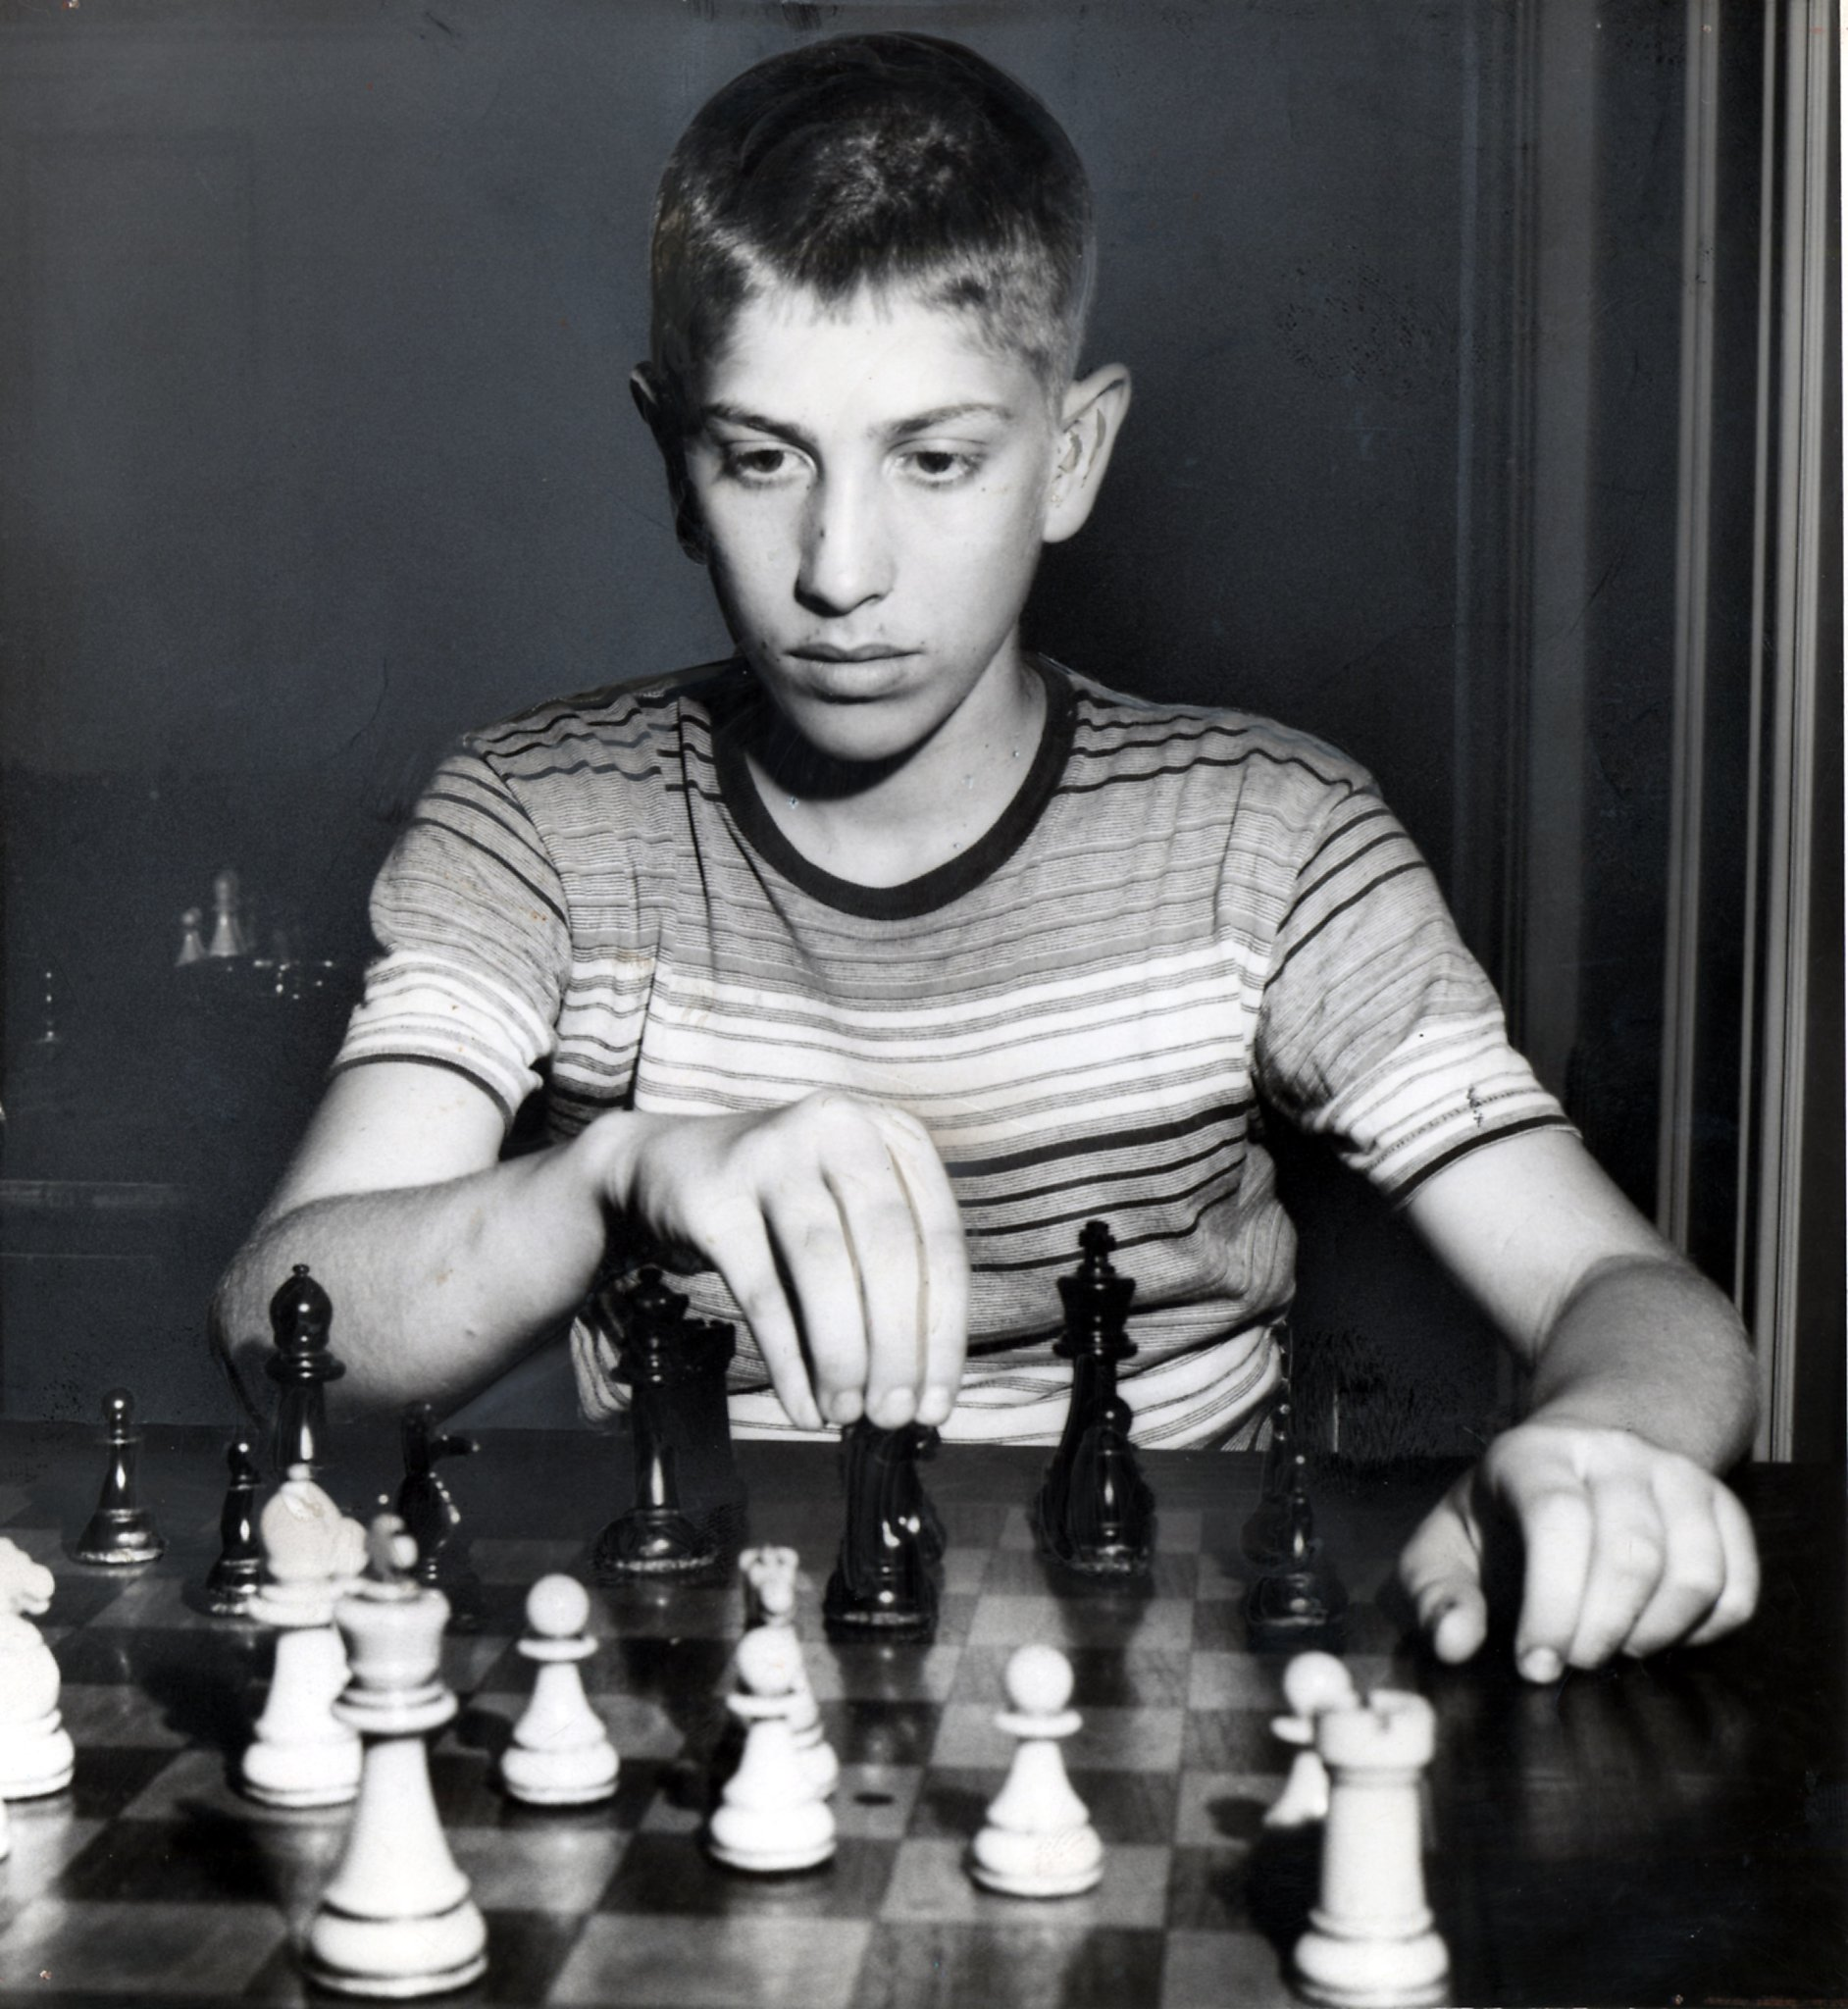 Chess genius Bobby Fischer spent his childhood in Brooklyn